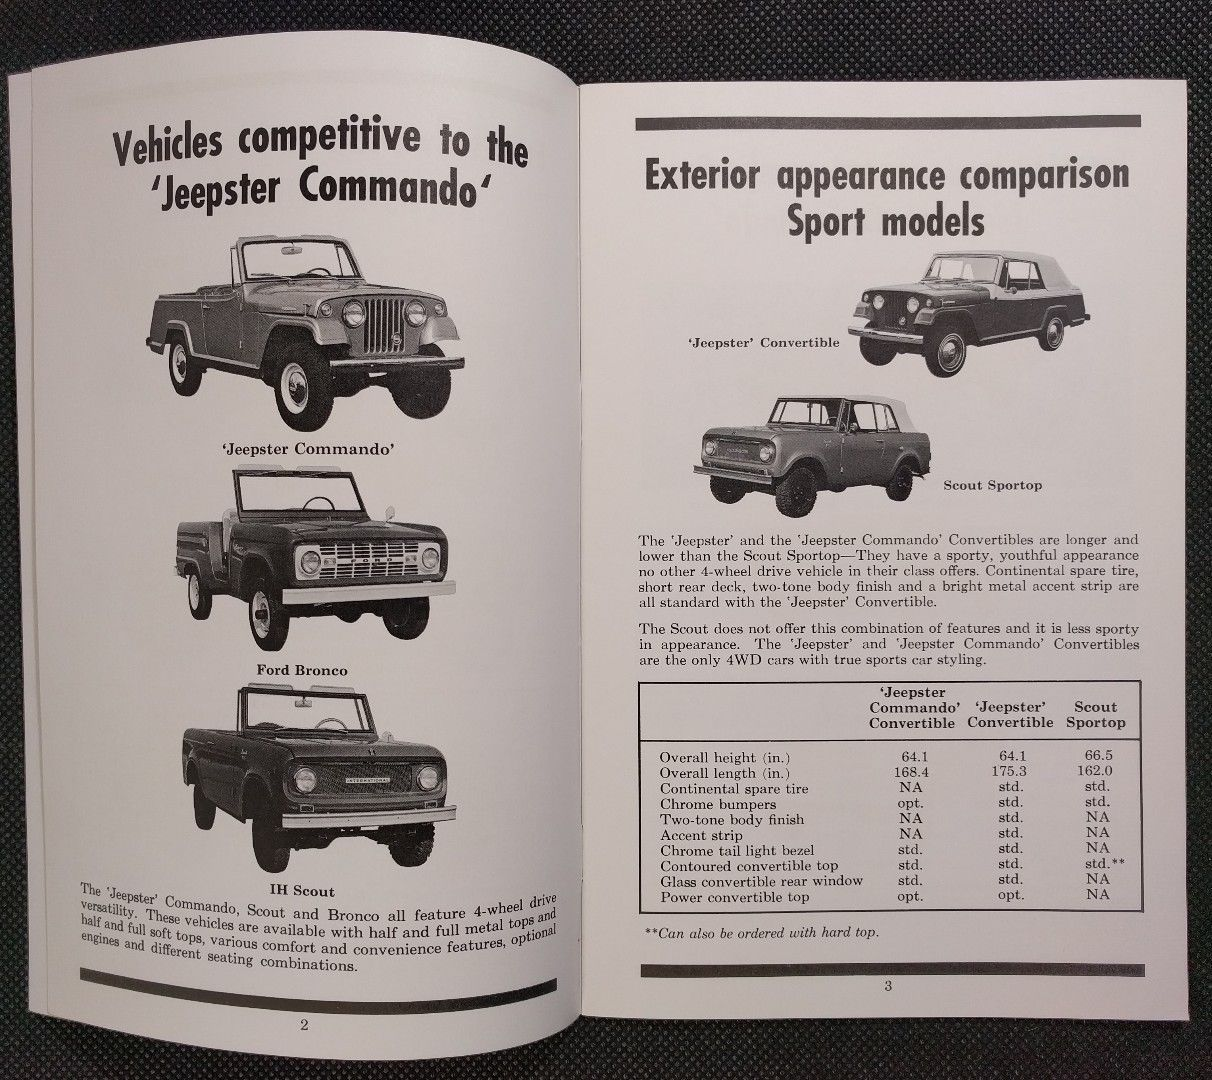 1968-jeepster-convertible-commando-booklet4